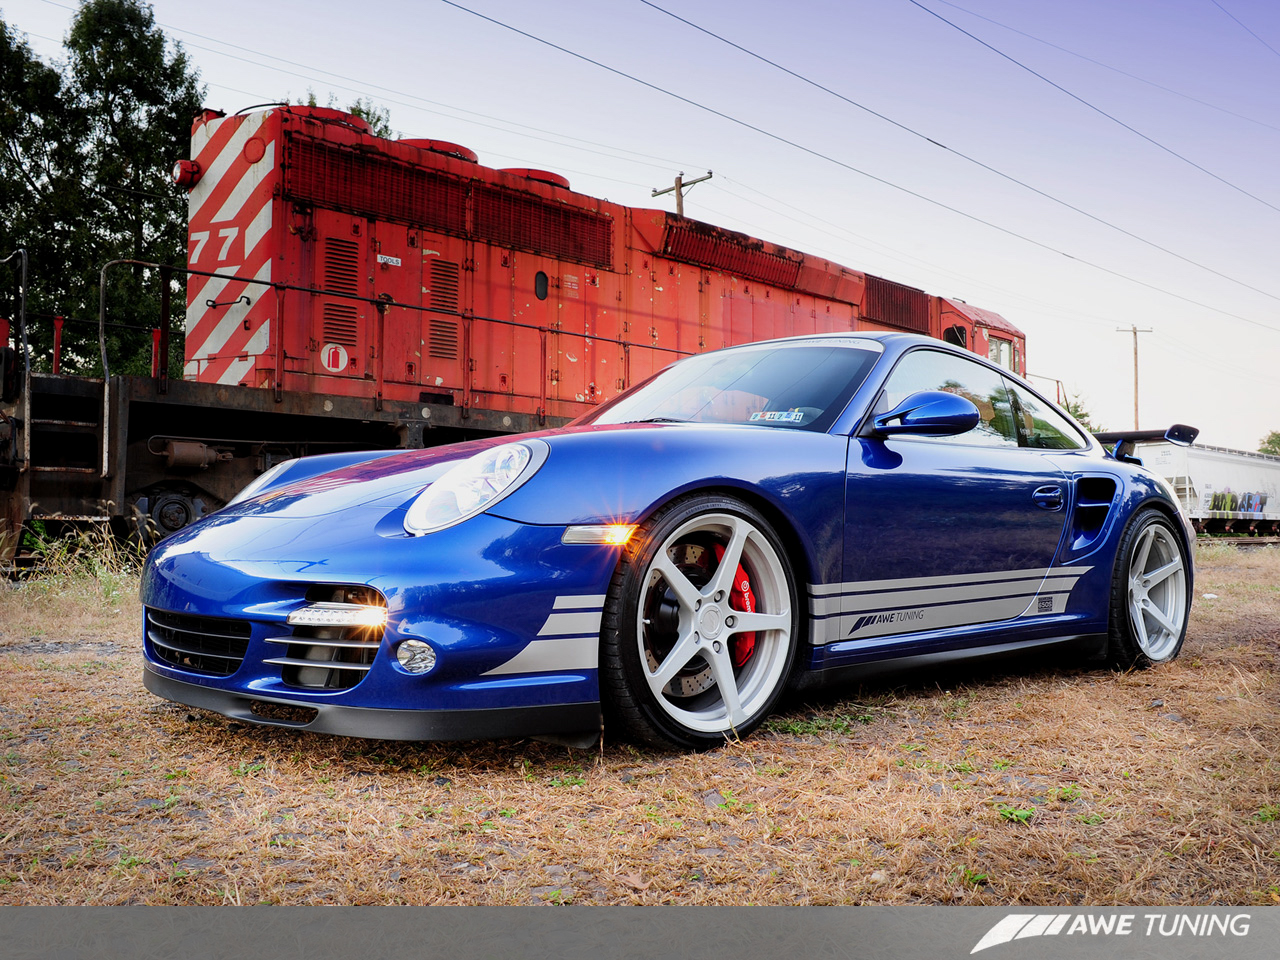 The Awe Tuning 991 Turbo S Build Thread Rennlist